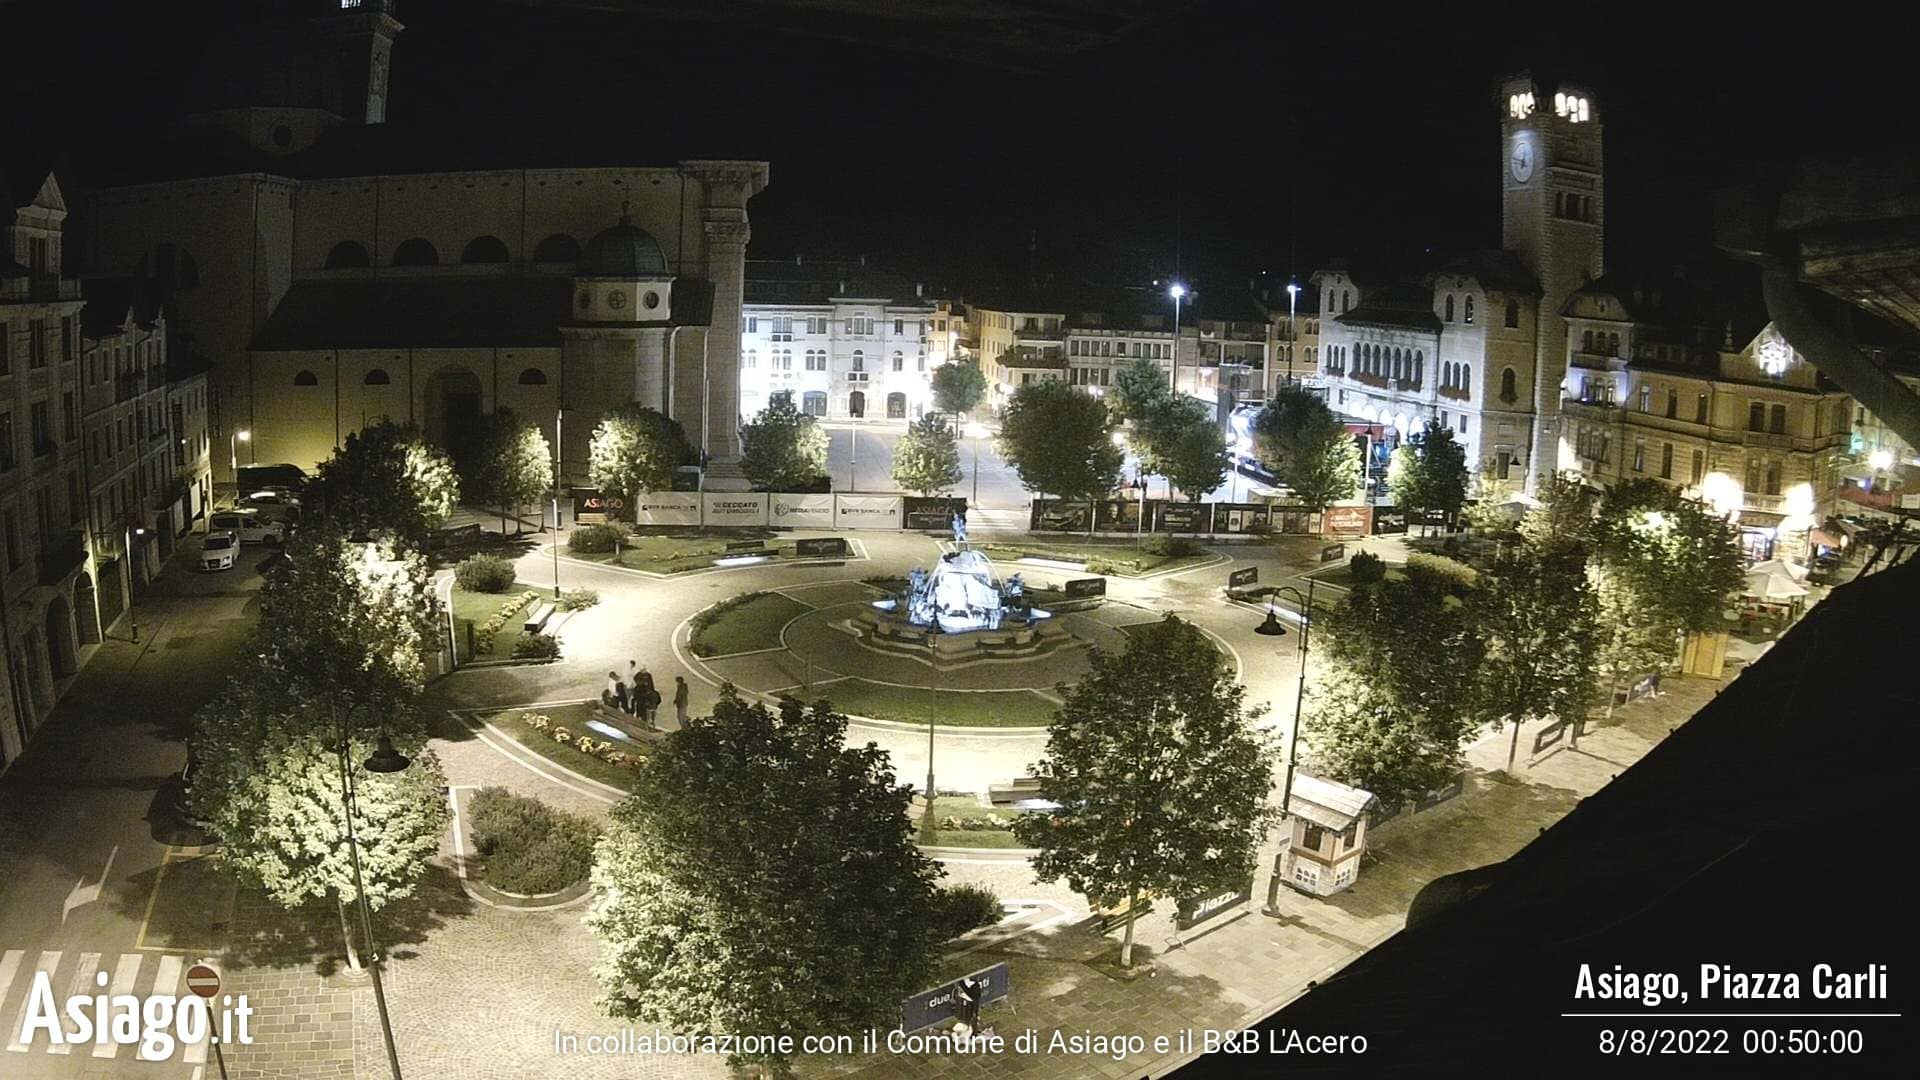 Webcam con vista su Piazza Carli ad Asiago